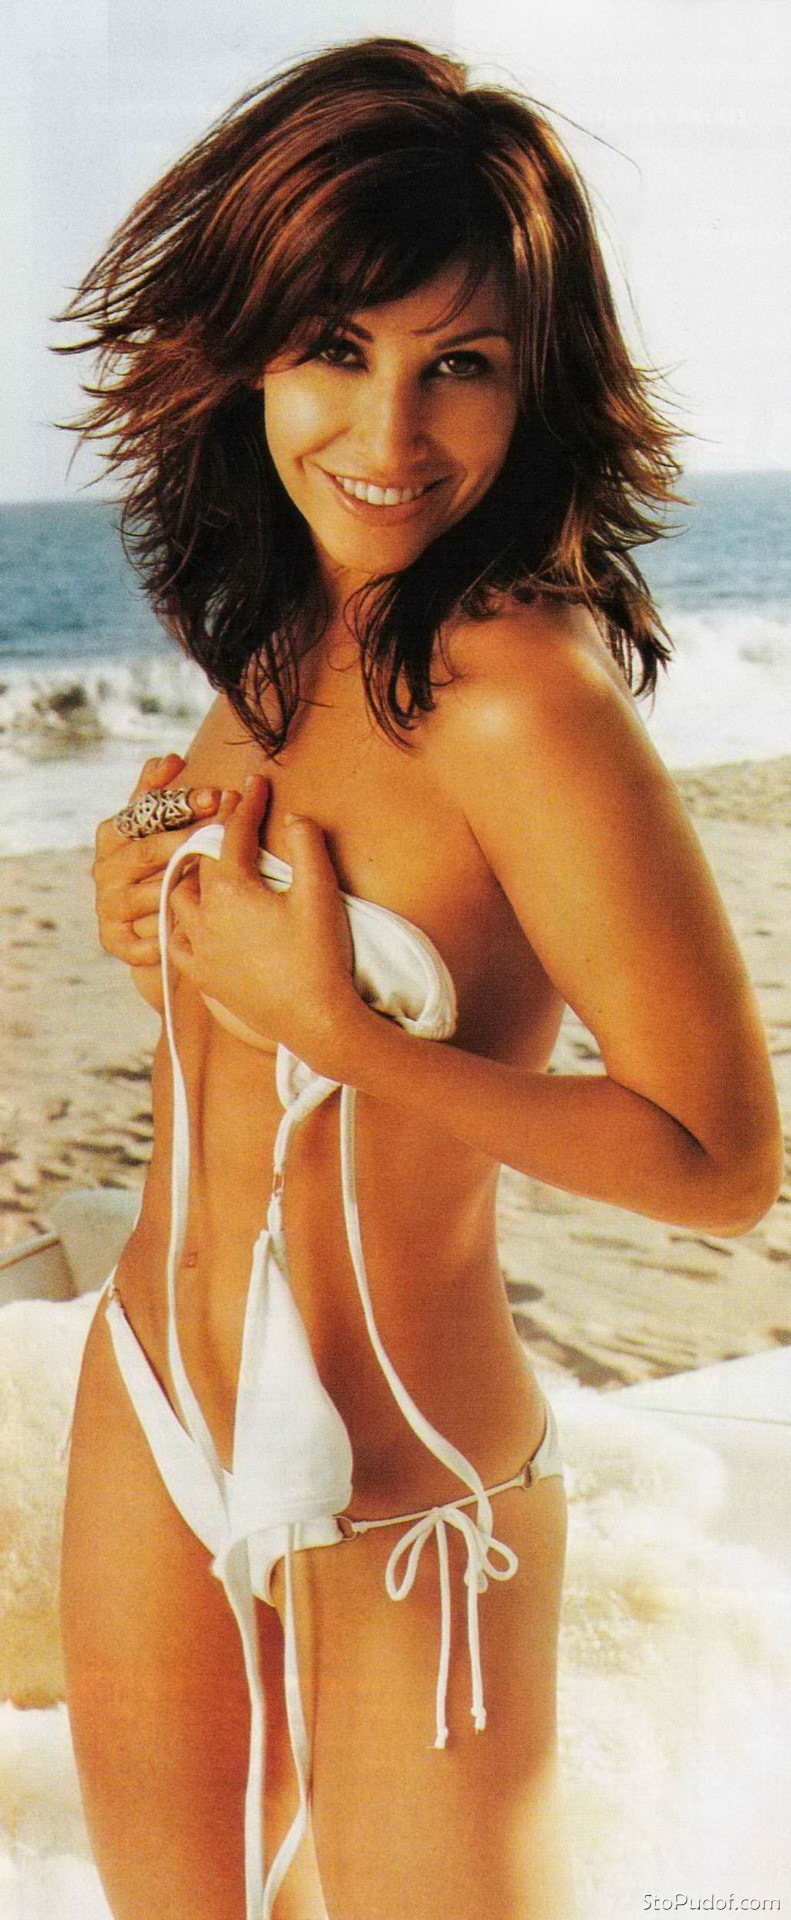 For Gina gershon nude real opinion you